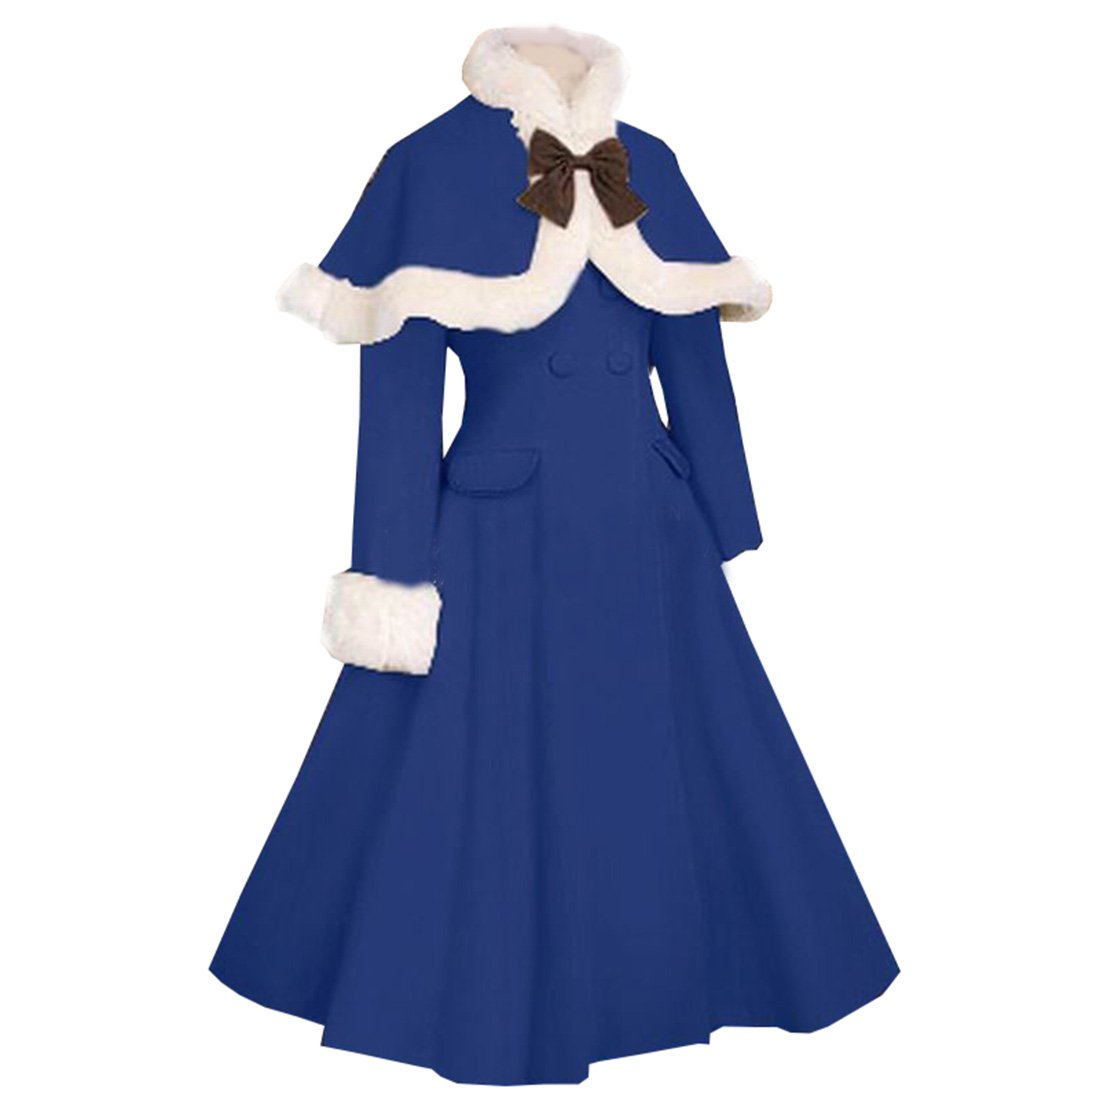 Vintage Style Children's Clothing: Girls, Boys, Baby, Toddler Partiss Women Gothic Lolita Double-breasted Thicken Long...  AT vintagedancer.com